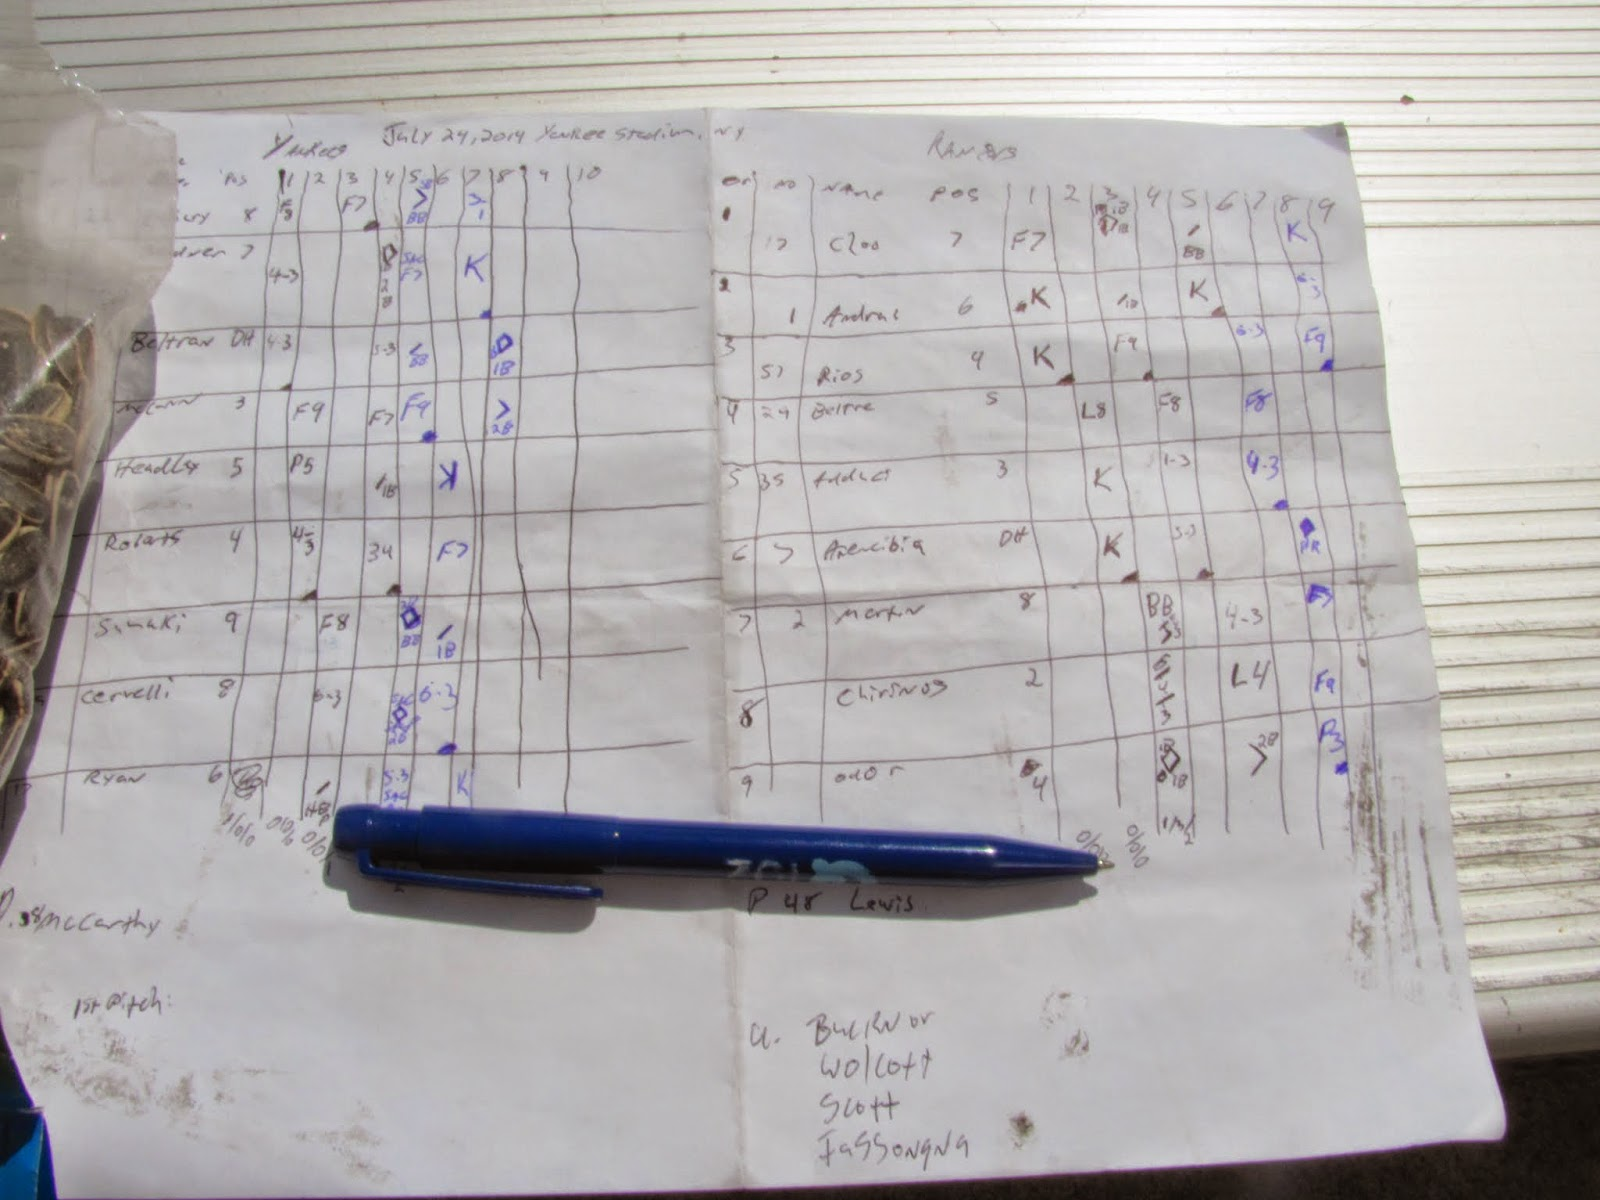 Poor Man's Baseball Scorebook